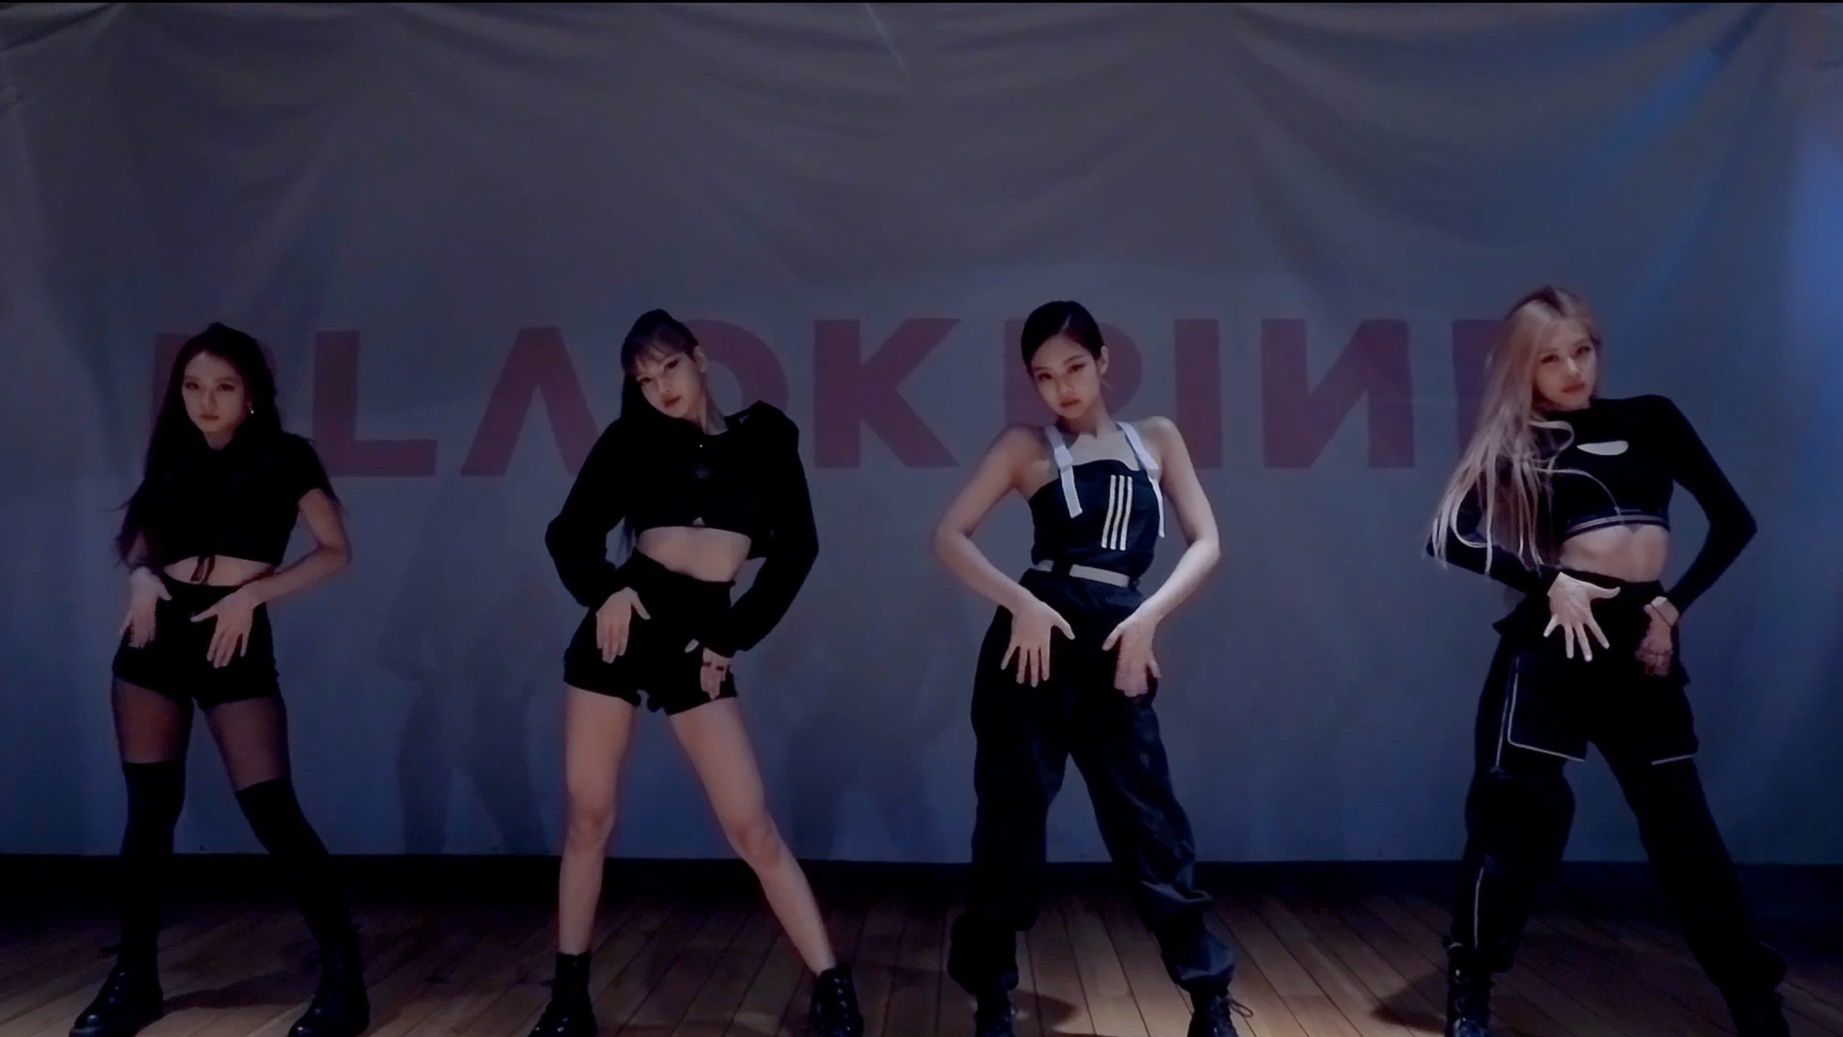 Black Pink Has Released A Video Of 8216 Kill This Love 8217 Choreography That Drives The Subject Eve Dance Outfits Practice Dance Practice Practice Outfits